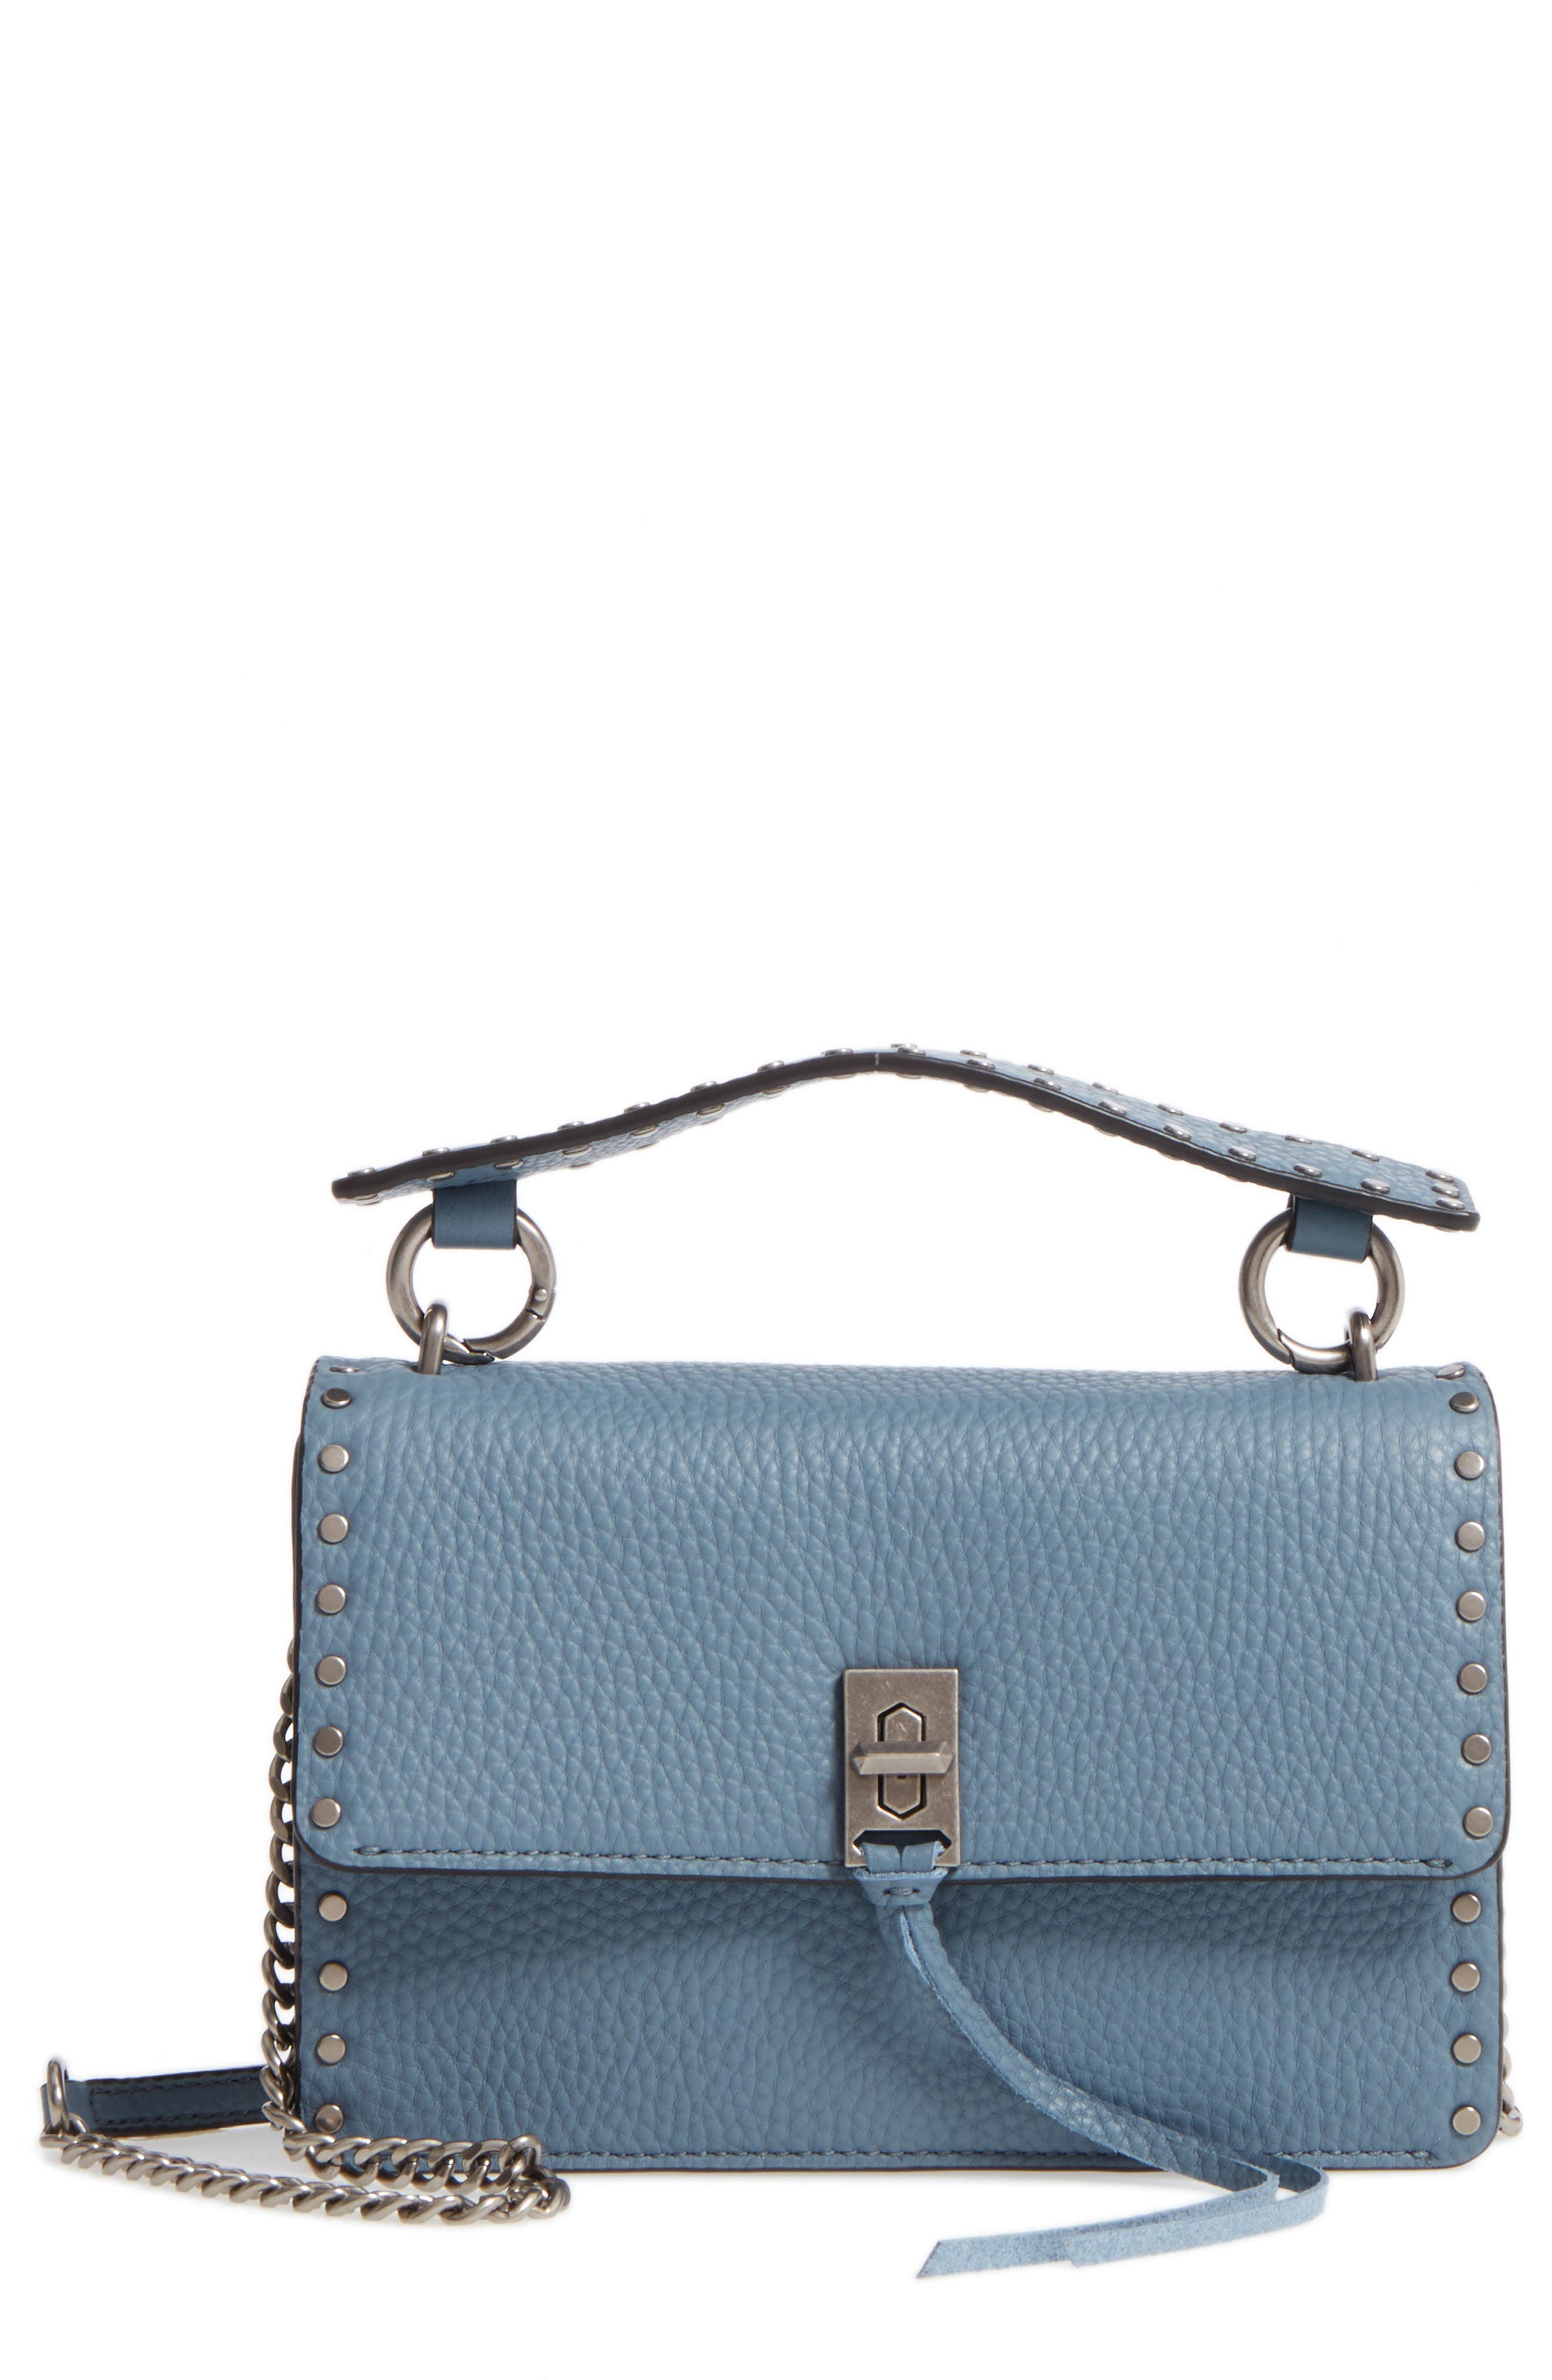 Darren Top Handle Crossbody Bag,                             Main thumbnail 1, color,                             400